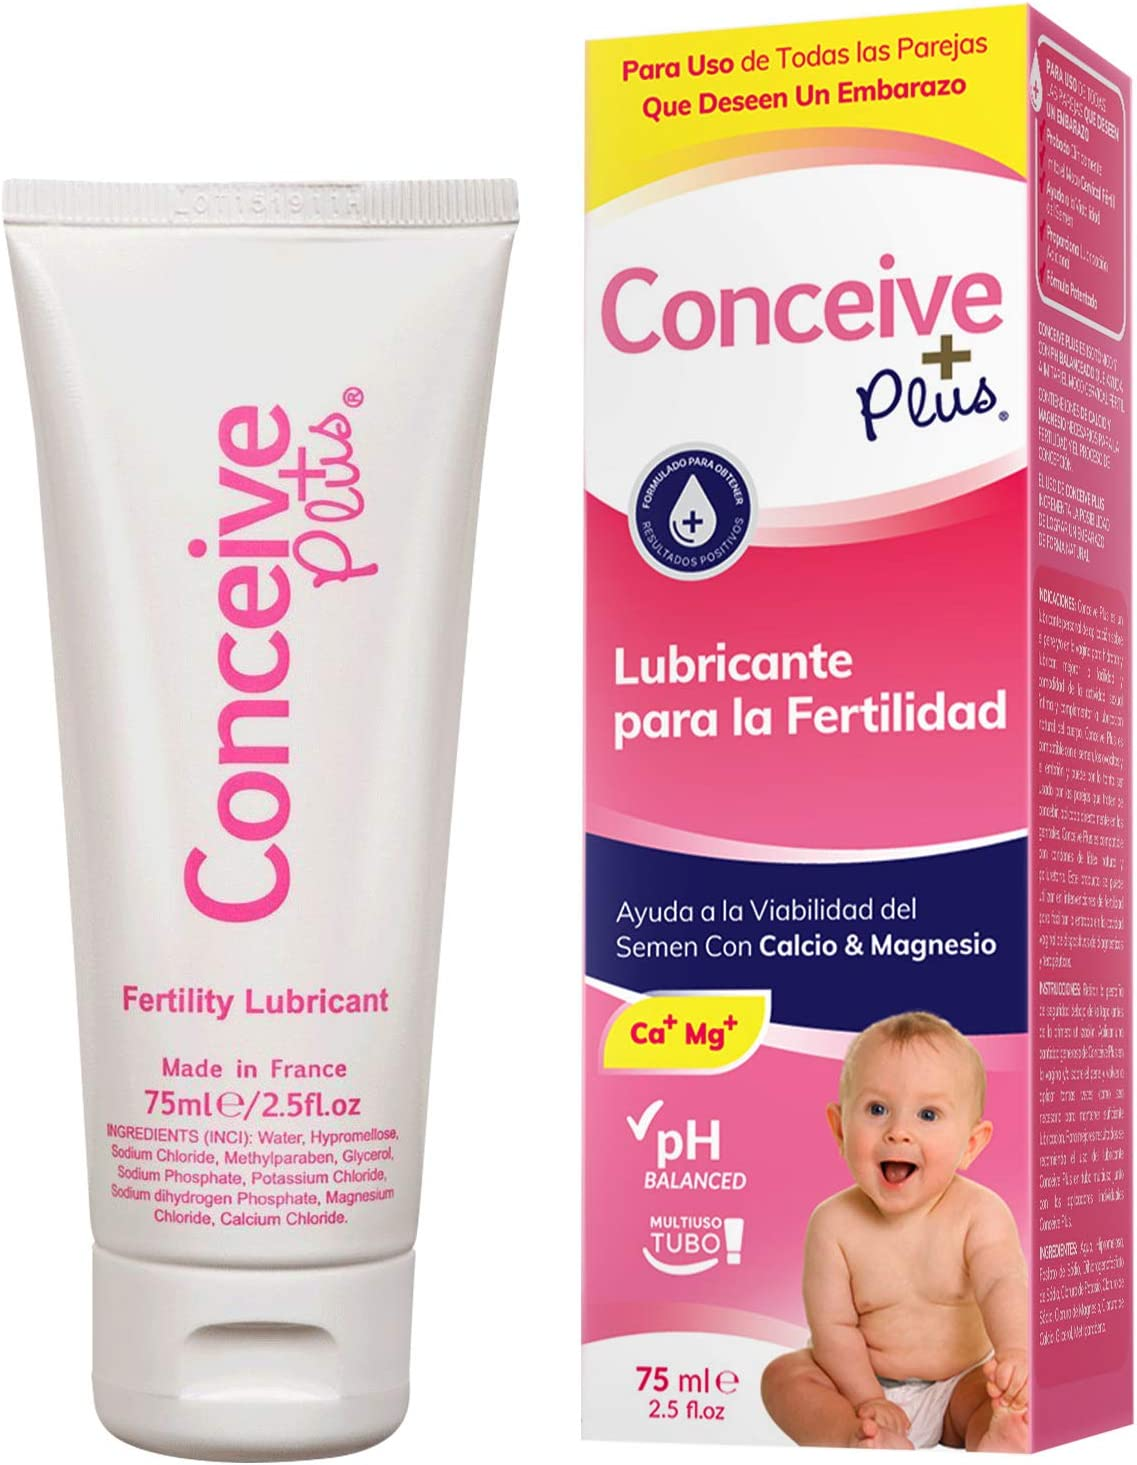 Conceive Plus Lubricante para La Fertilidad, Tubo 75ml